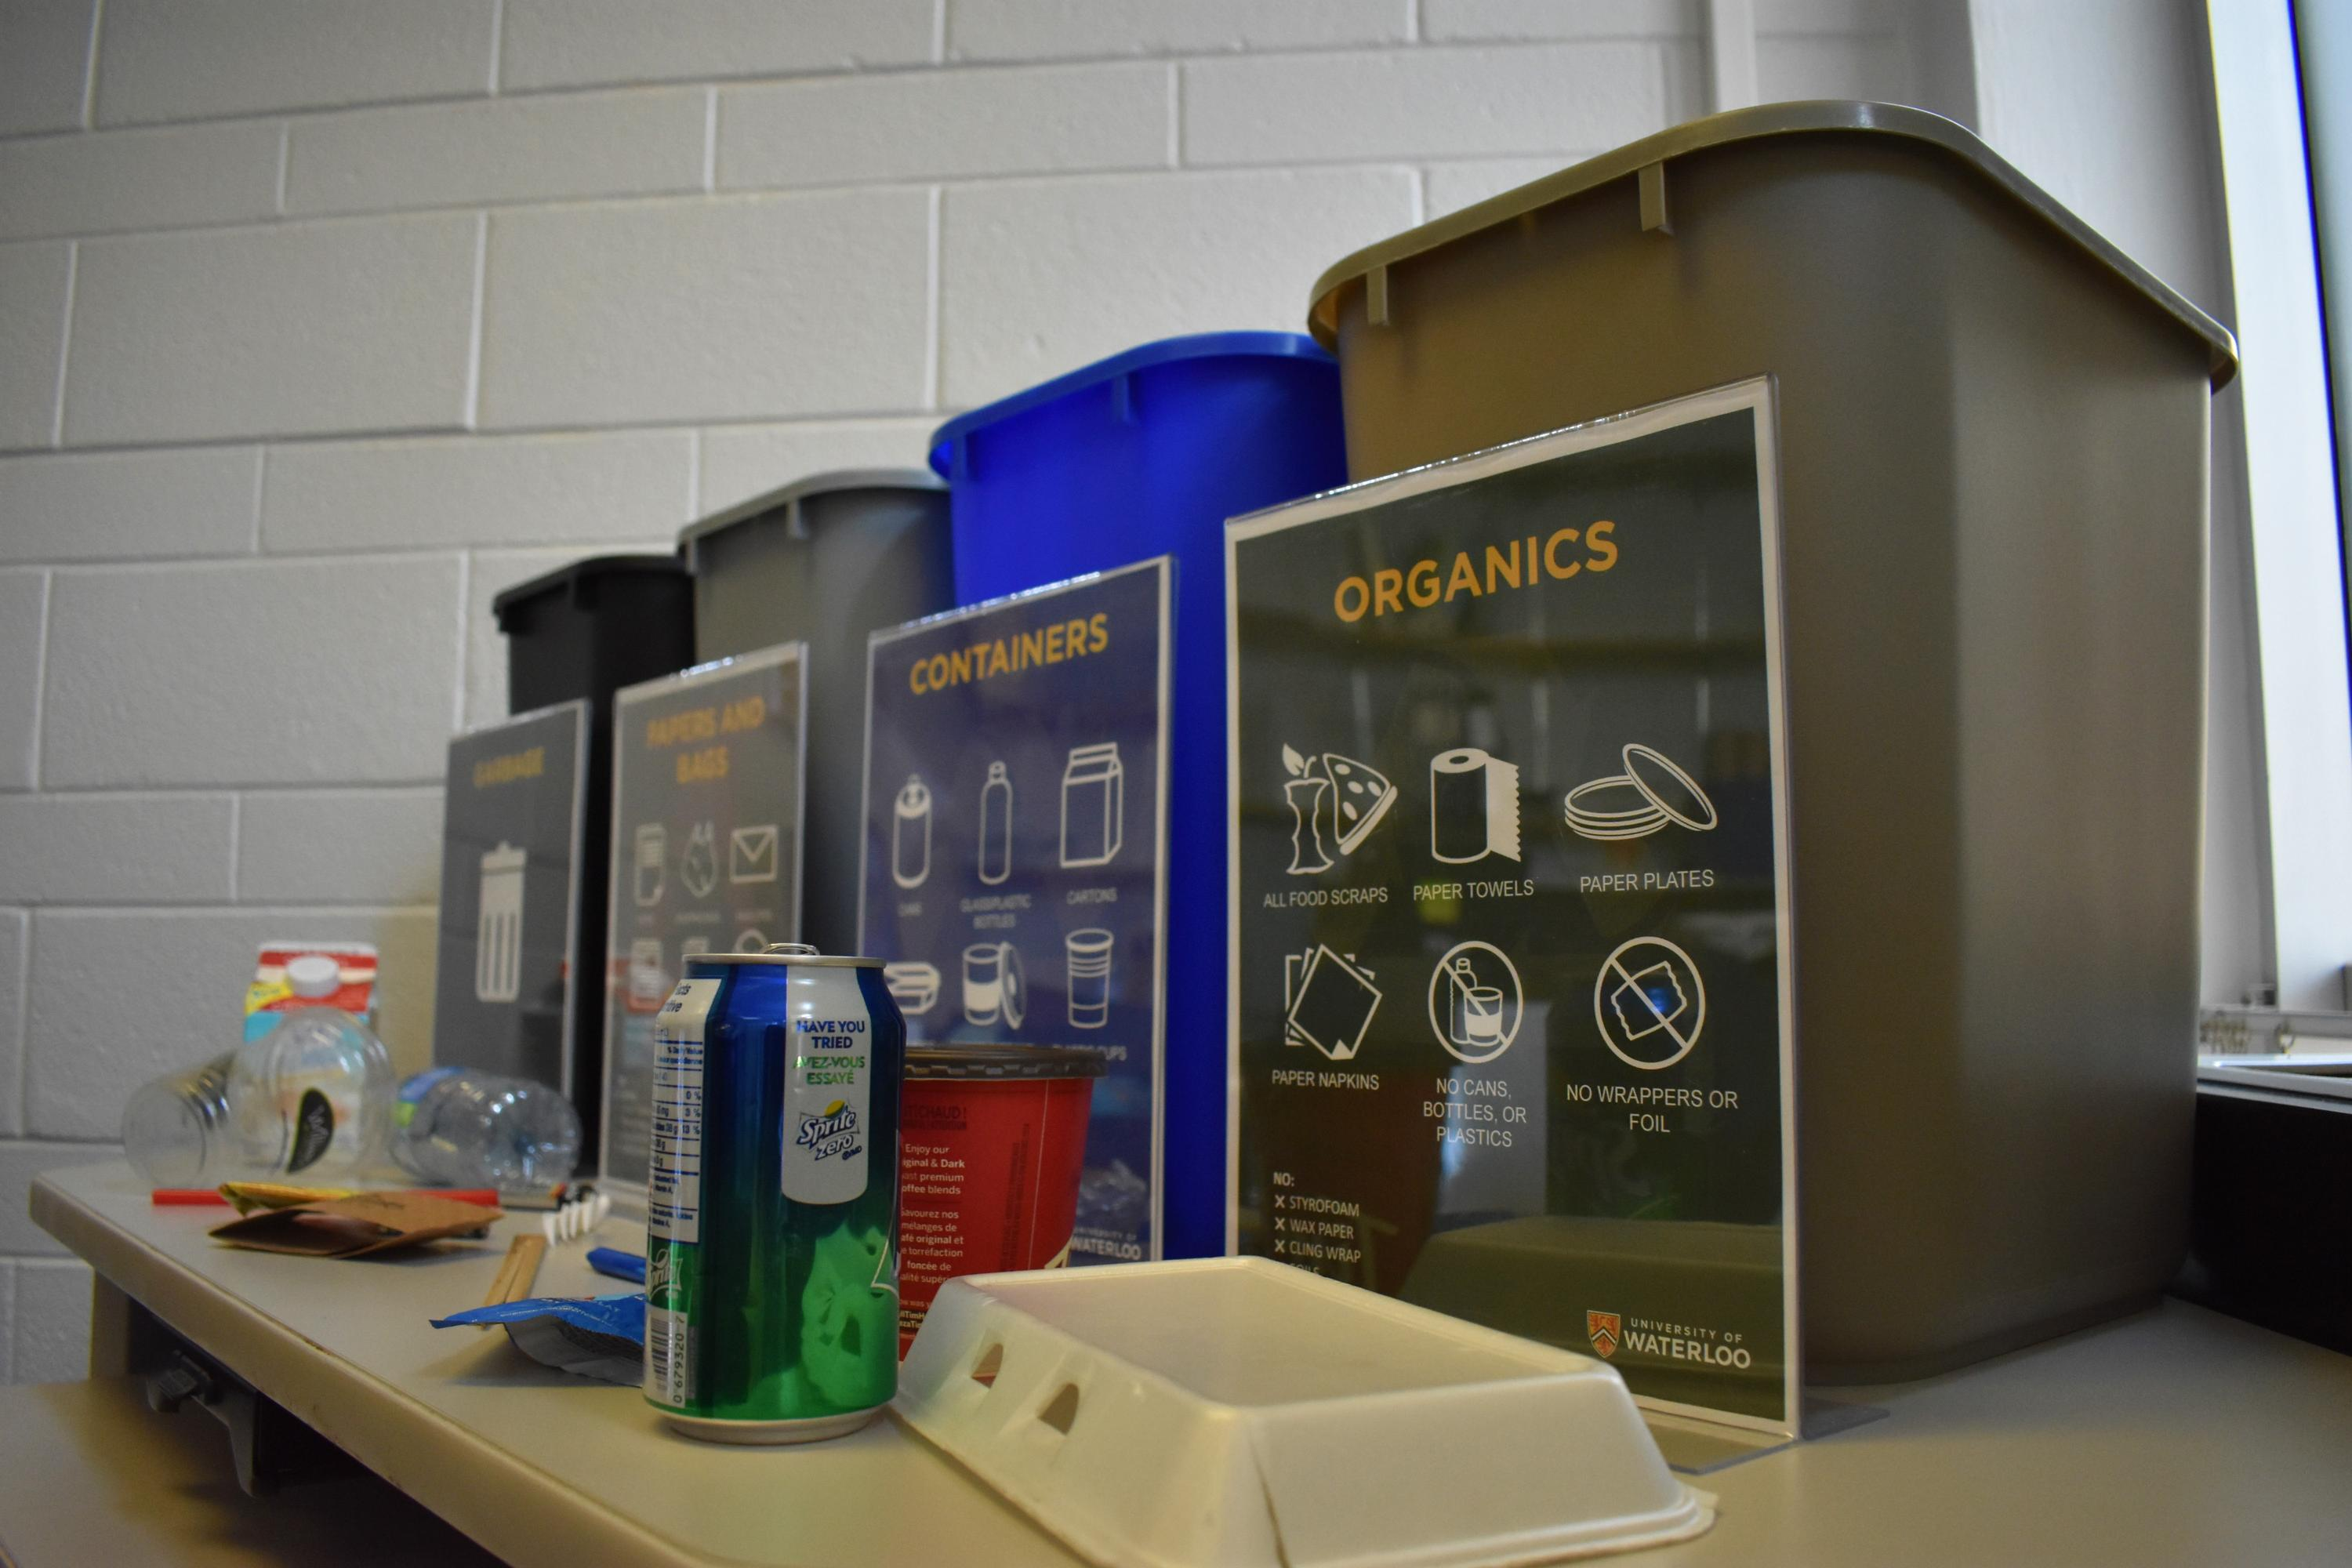 4 waste bins with garbage items to be sorted